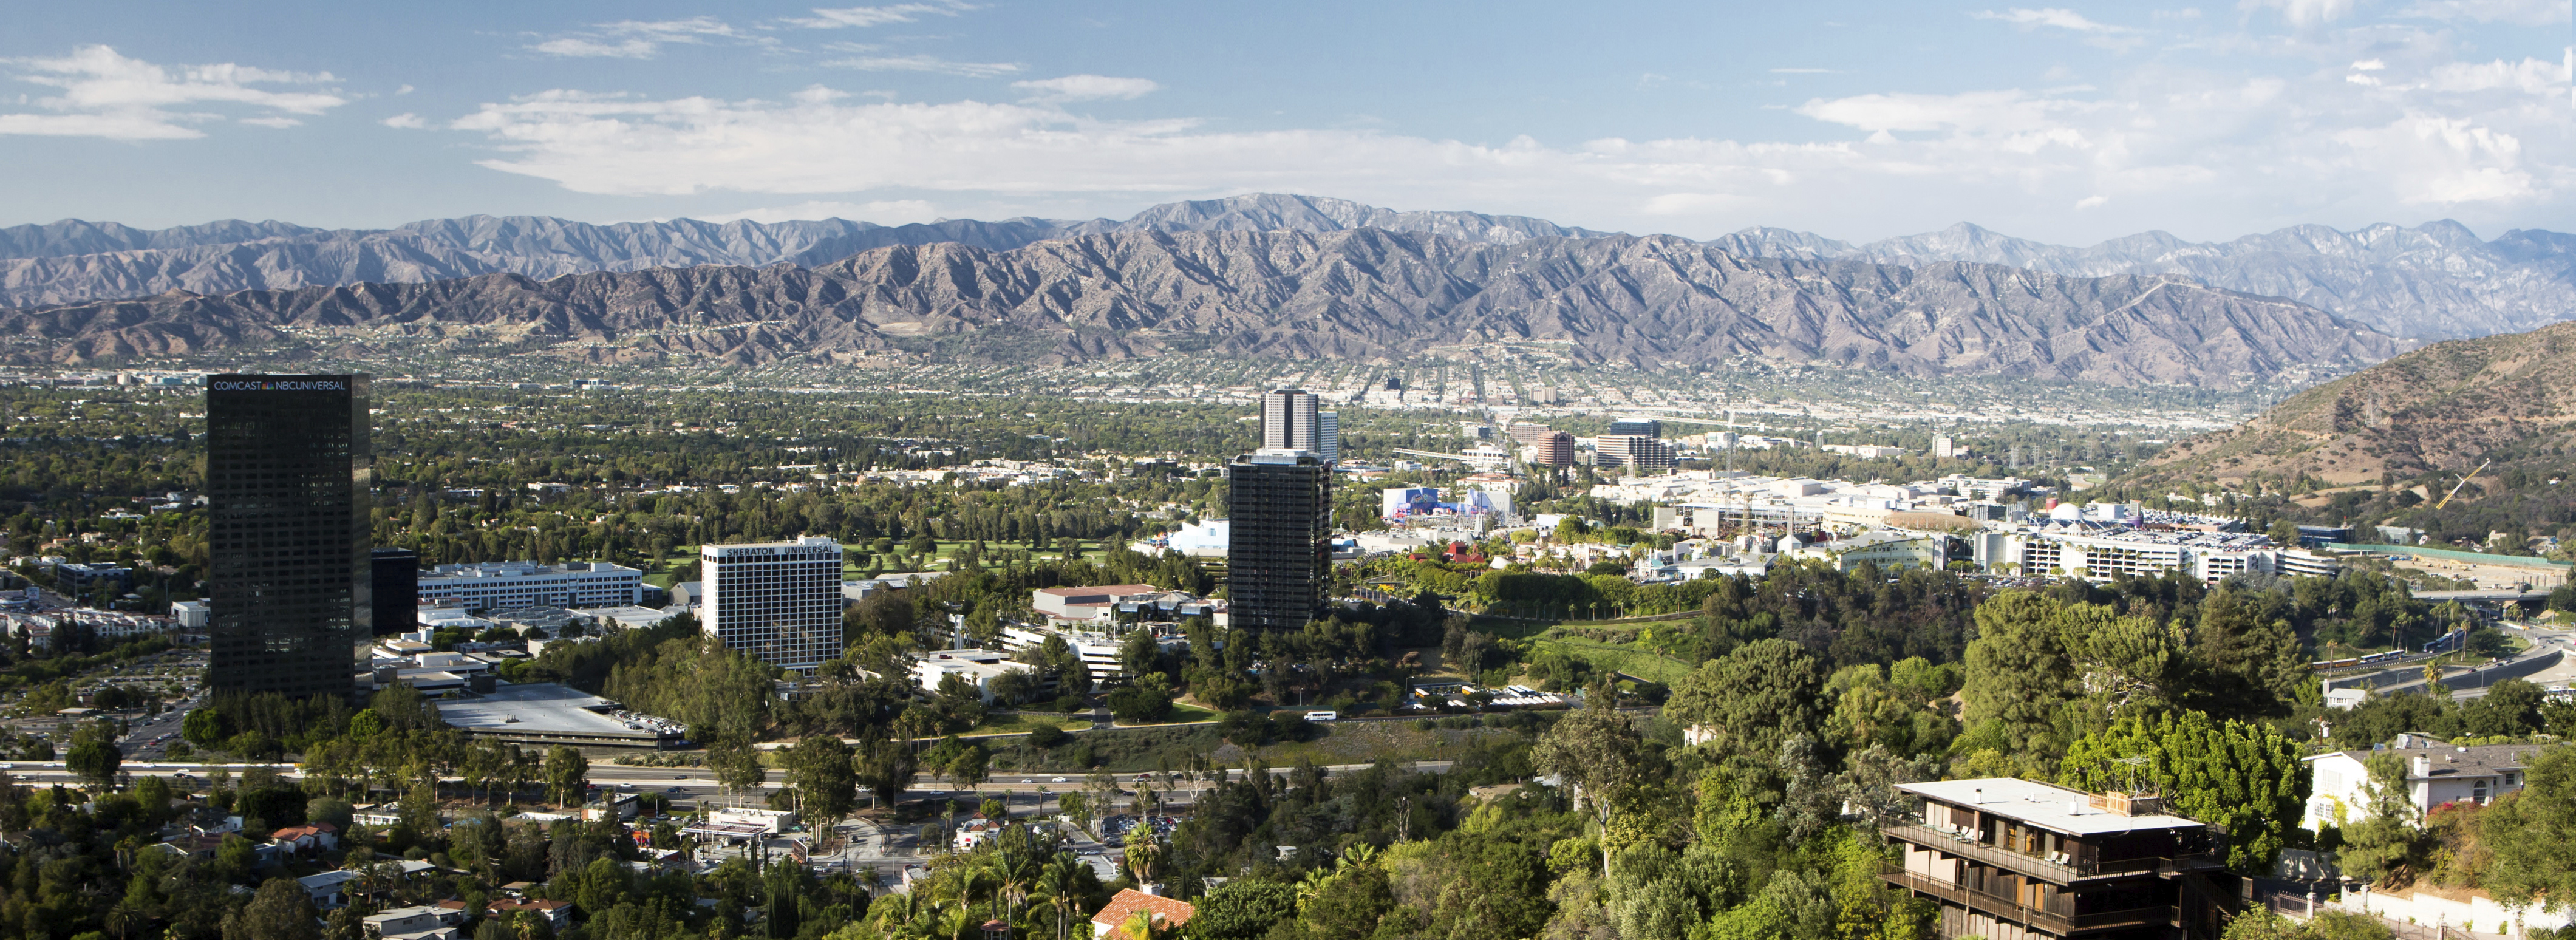 A view over Burbank on a hot clear summer's day in Los Angeles, California, USA